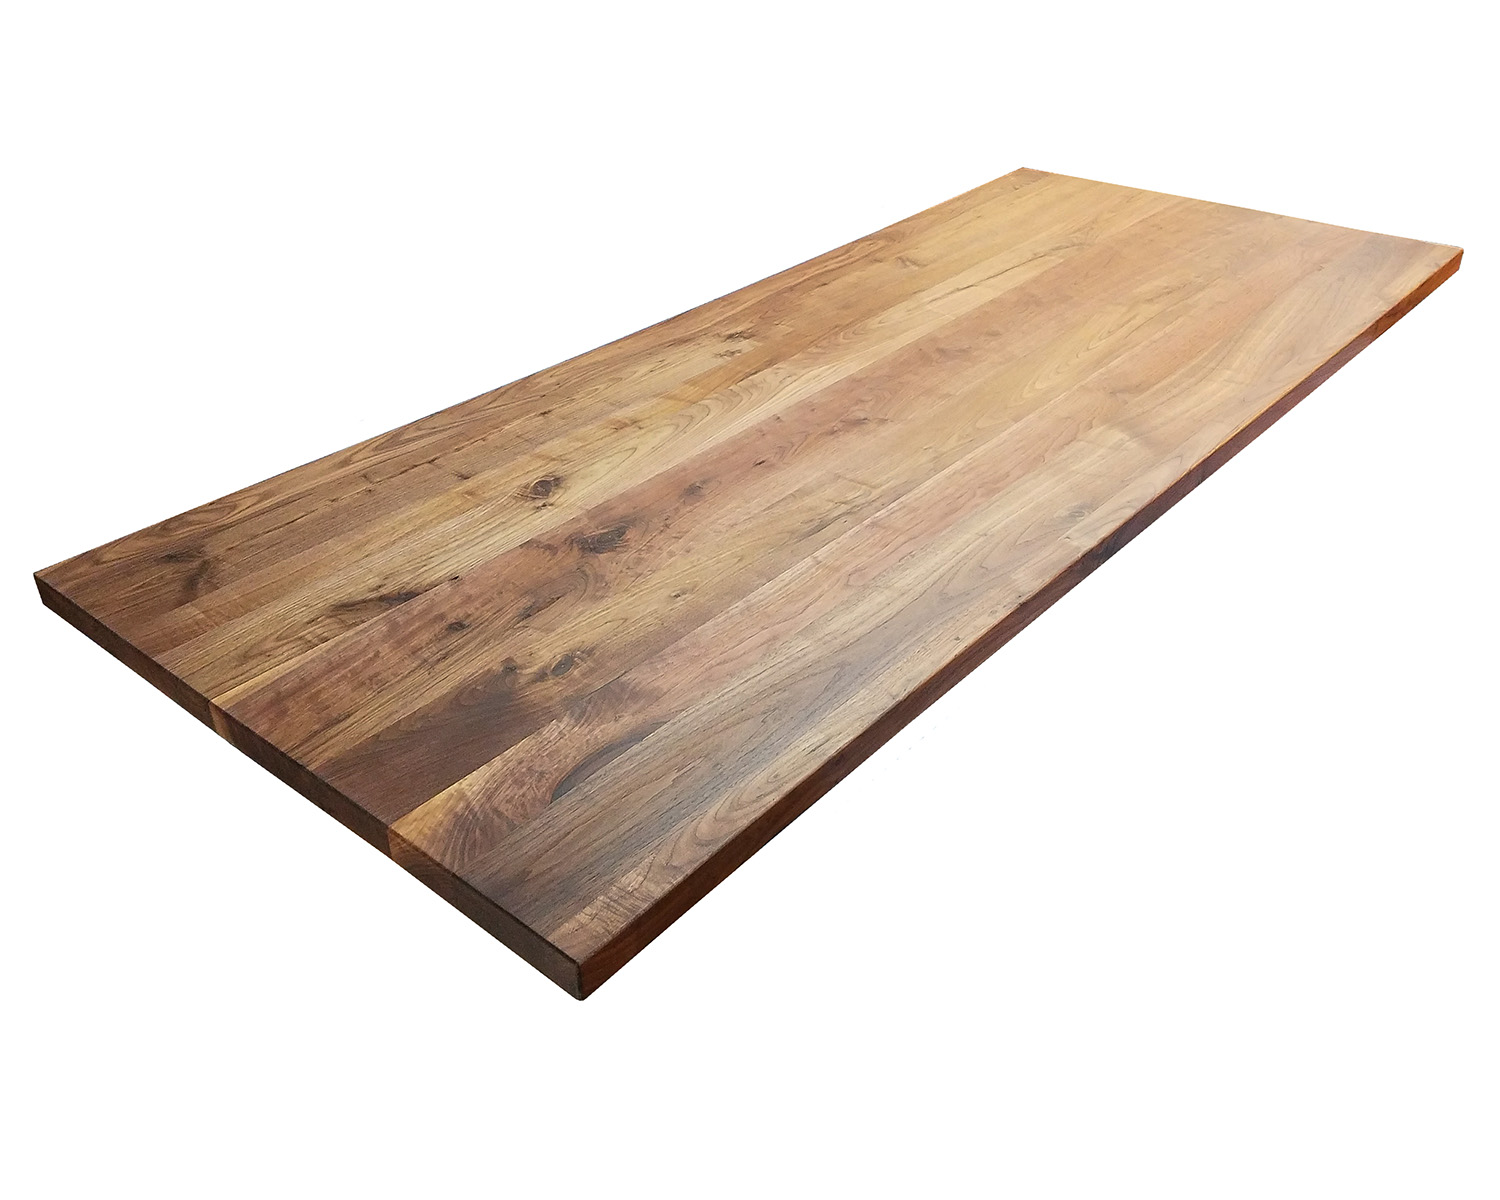 Zero-VOC-Walnut-Tabletop-atlanta-w.jpg